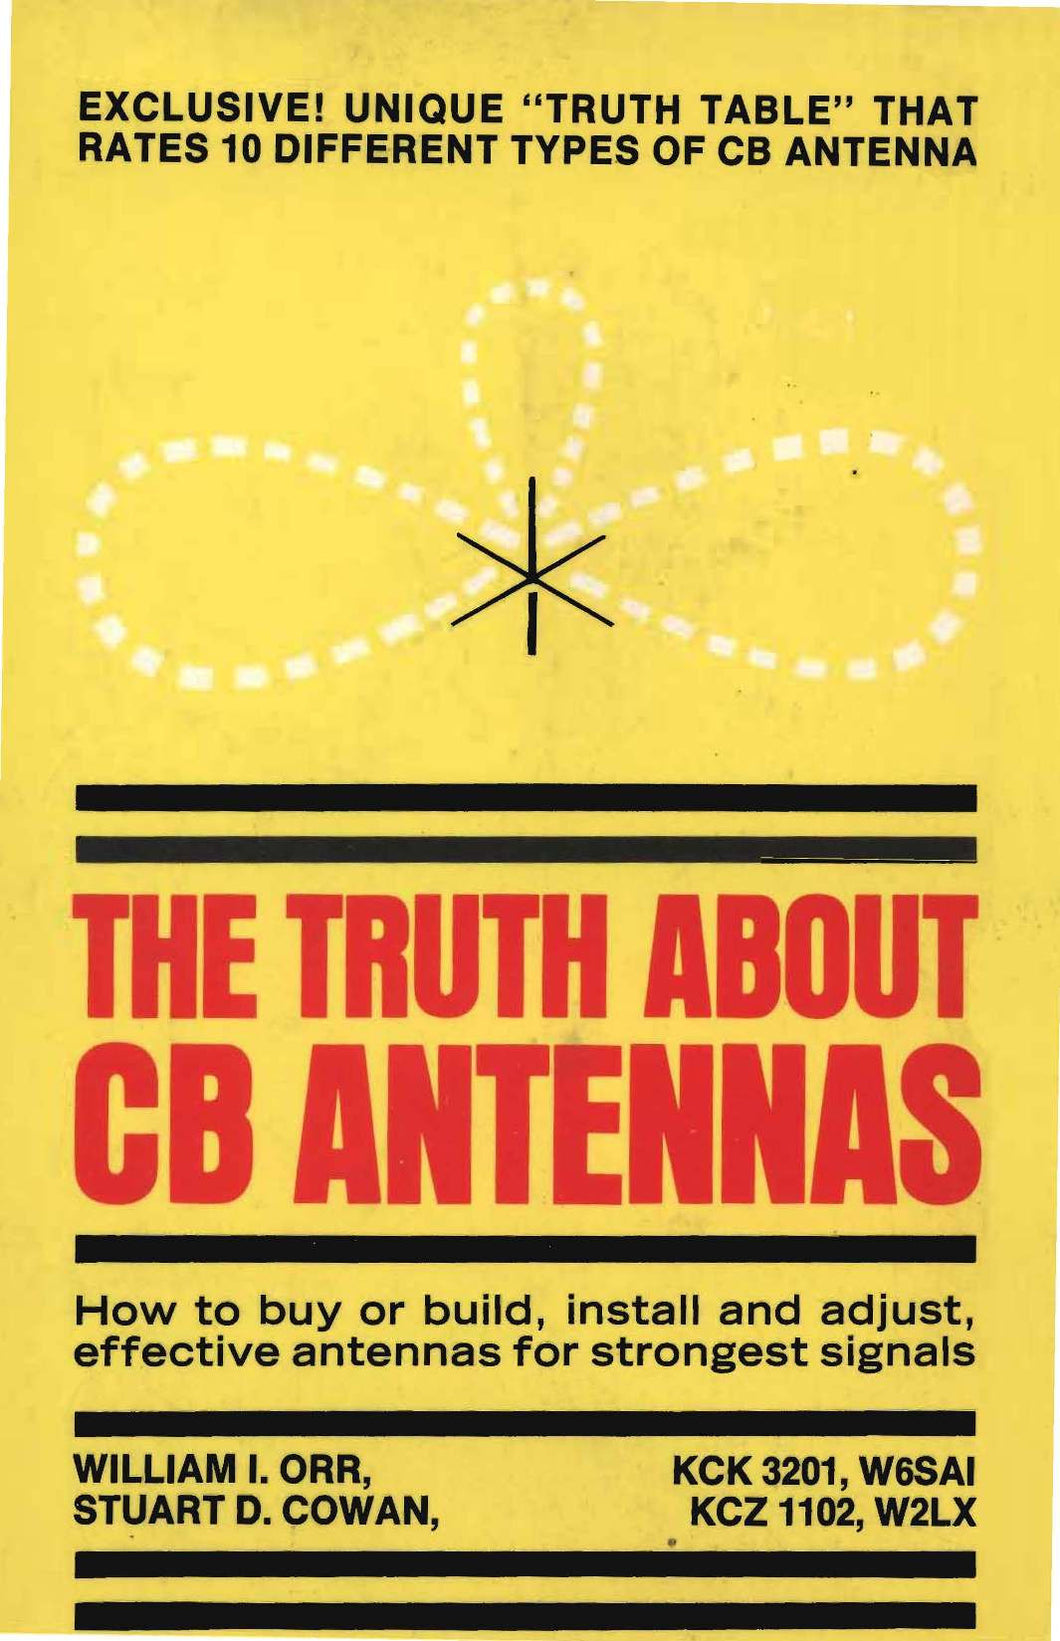 The Truth About CB Antennas